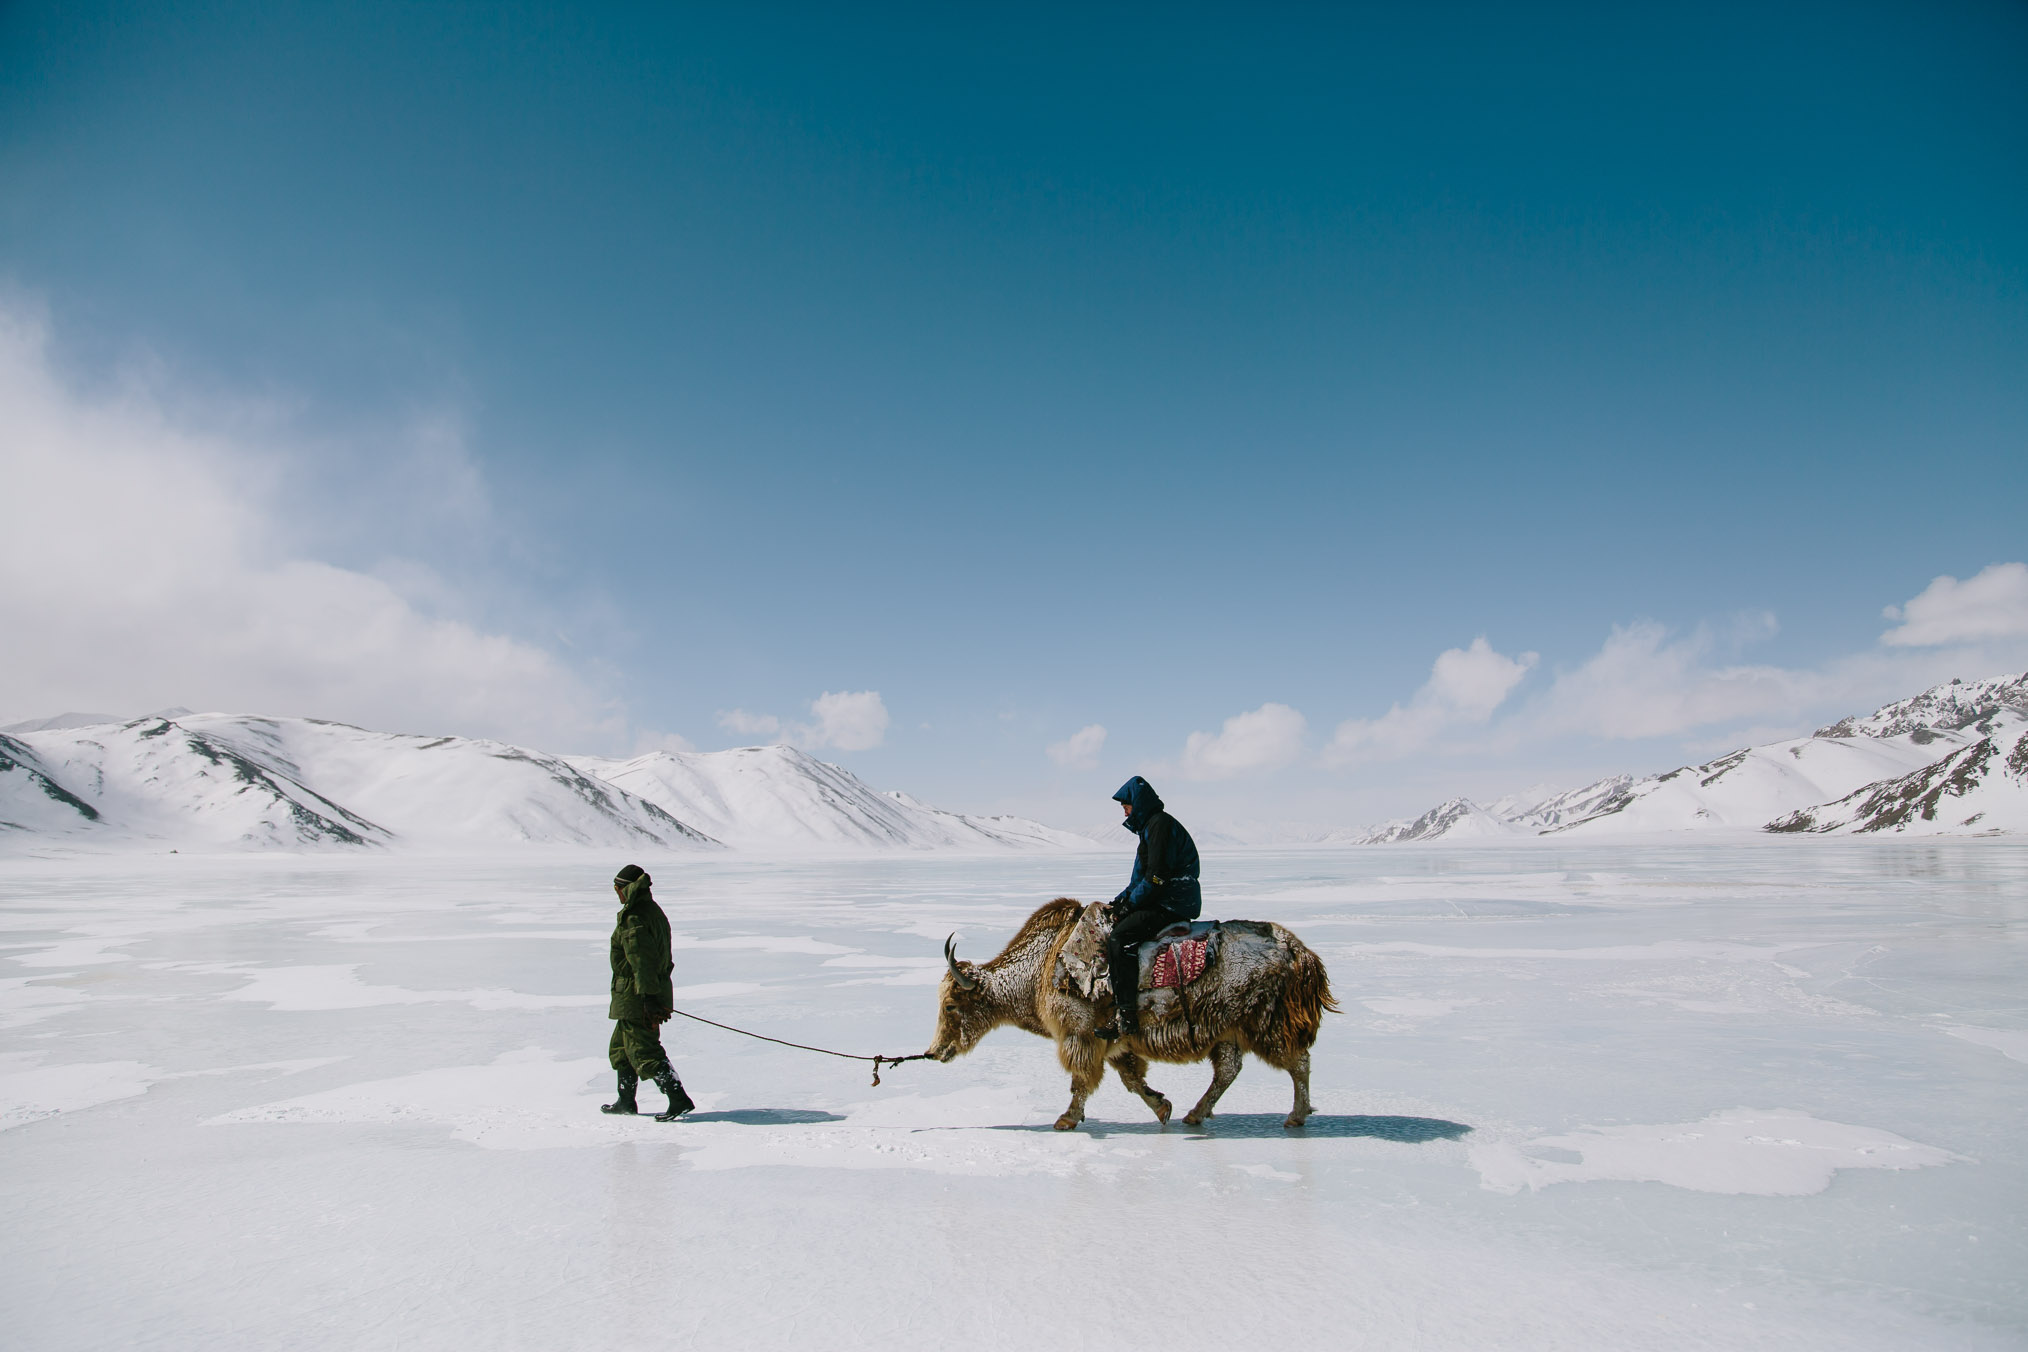 A Burgut ranger leads a yak ridden by one of the one of the Panthera biologists across the snow and ice. Photograph by Joel Caldwell